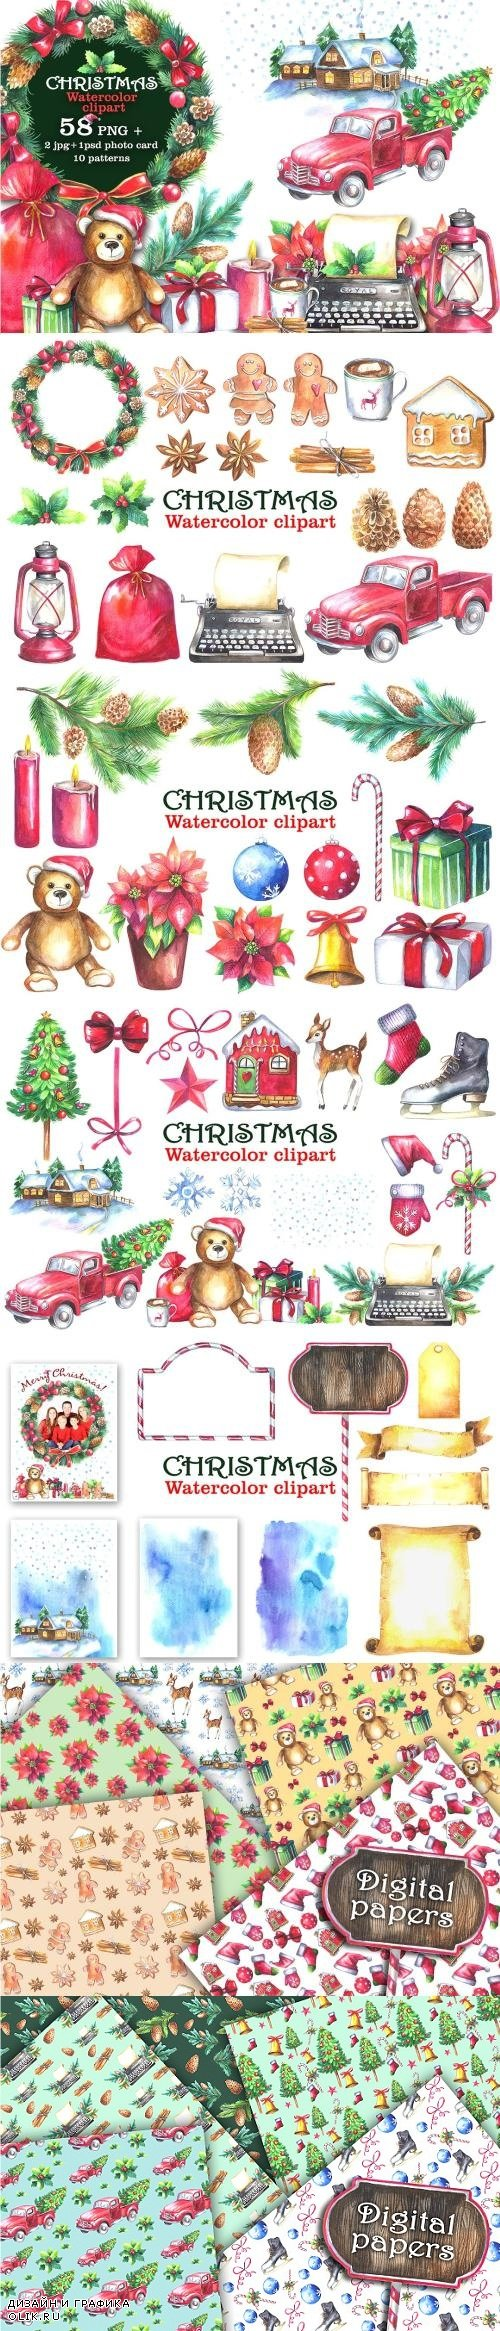 Watercolor Christmas Clipart - 2016923